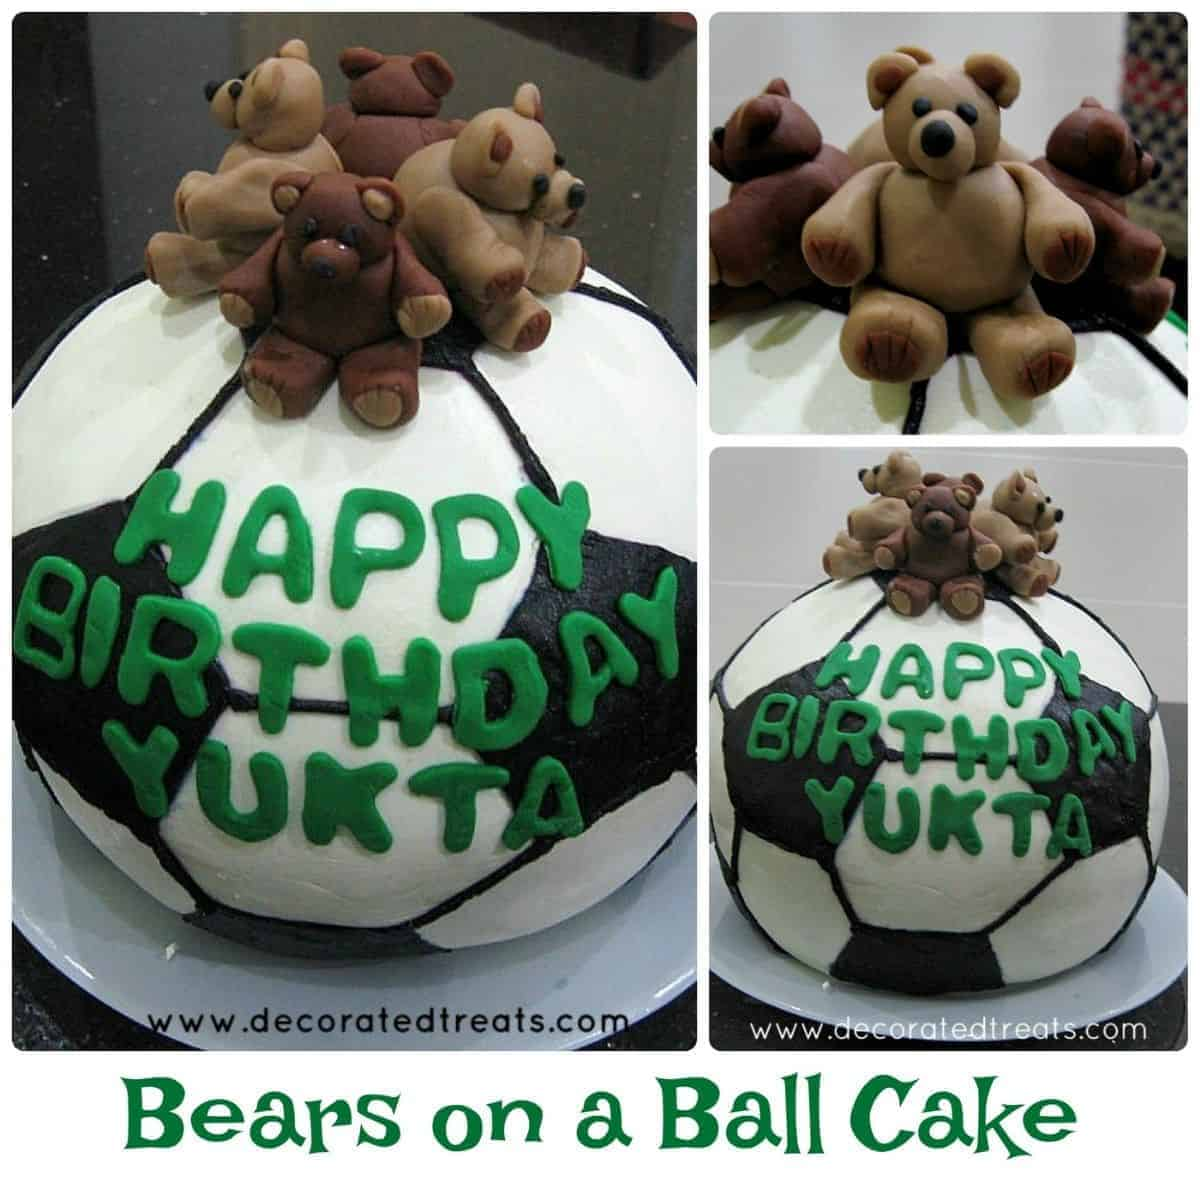 3D ball cake in black and white with 4 fondant teddies as the toppers